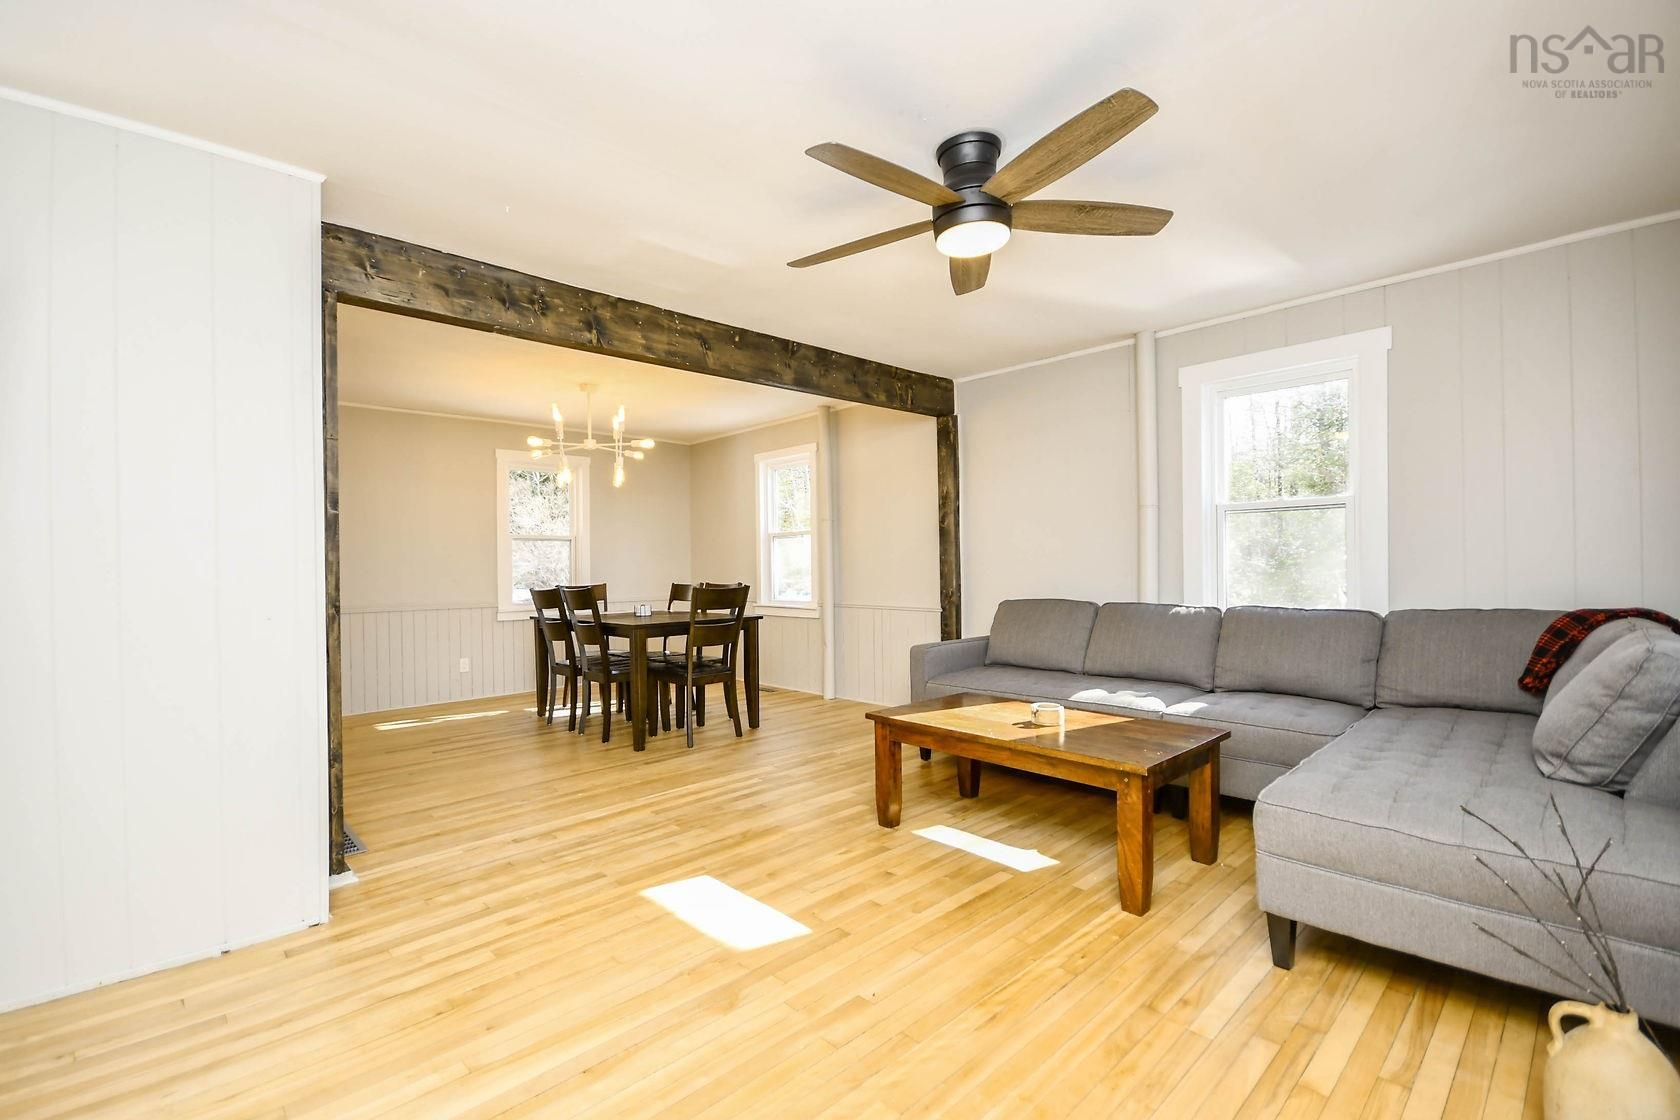 Photo 14: Photos: 284 East River Road in Sheet Harbour: 35-Halifax County East Residential for sale (Halifax-Dartmouth)  : MLS®# 202120104